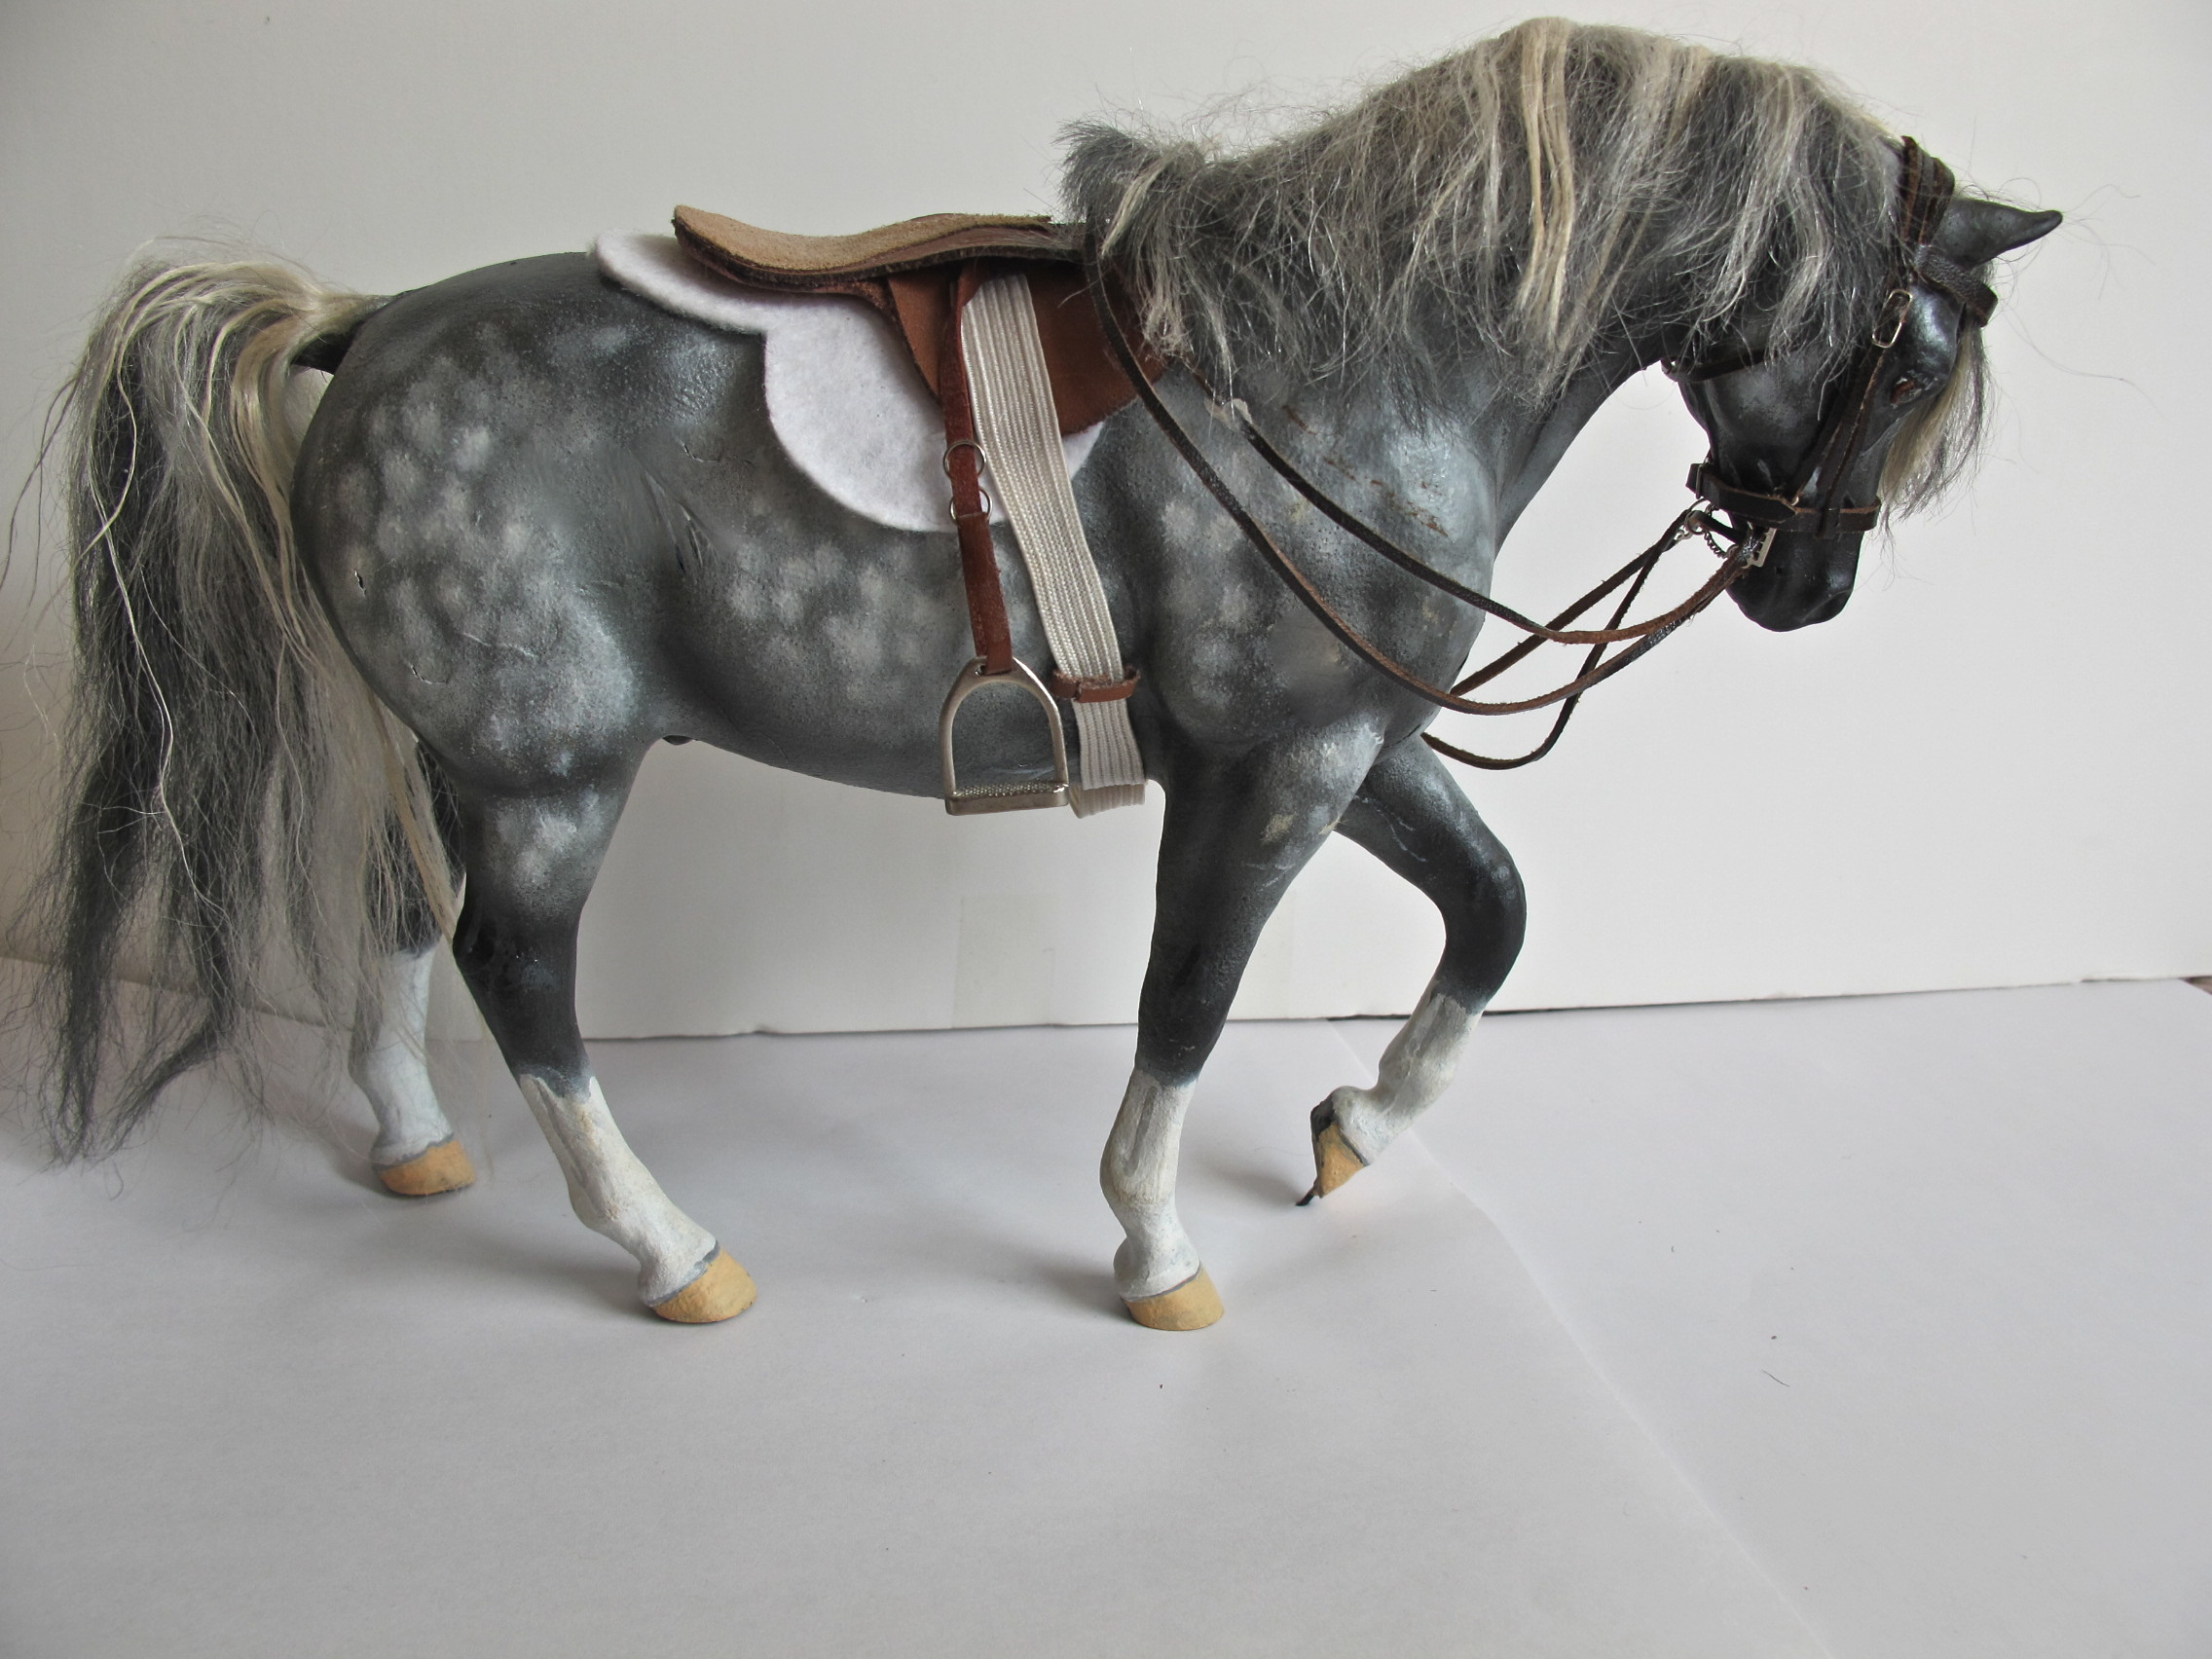 Best Breyer Horses And Horse Toys : Vintage breyer horses of mine equestrian stylist